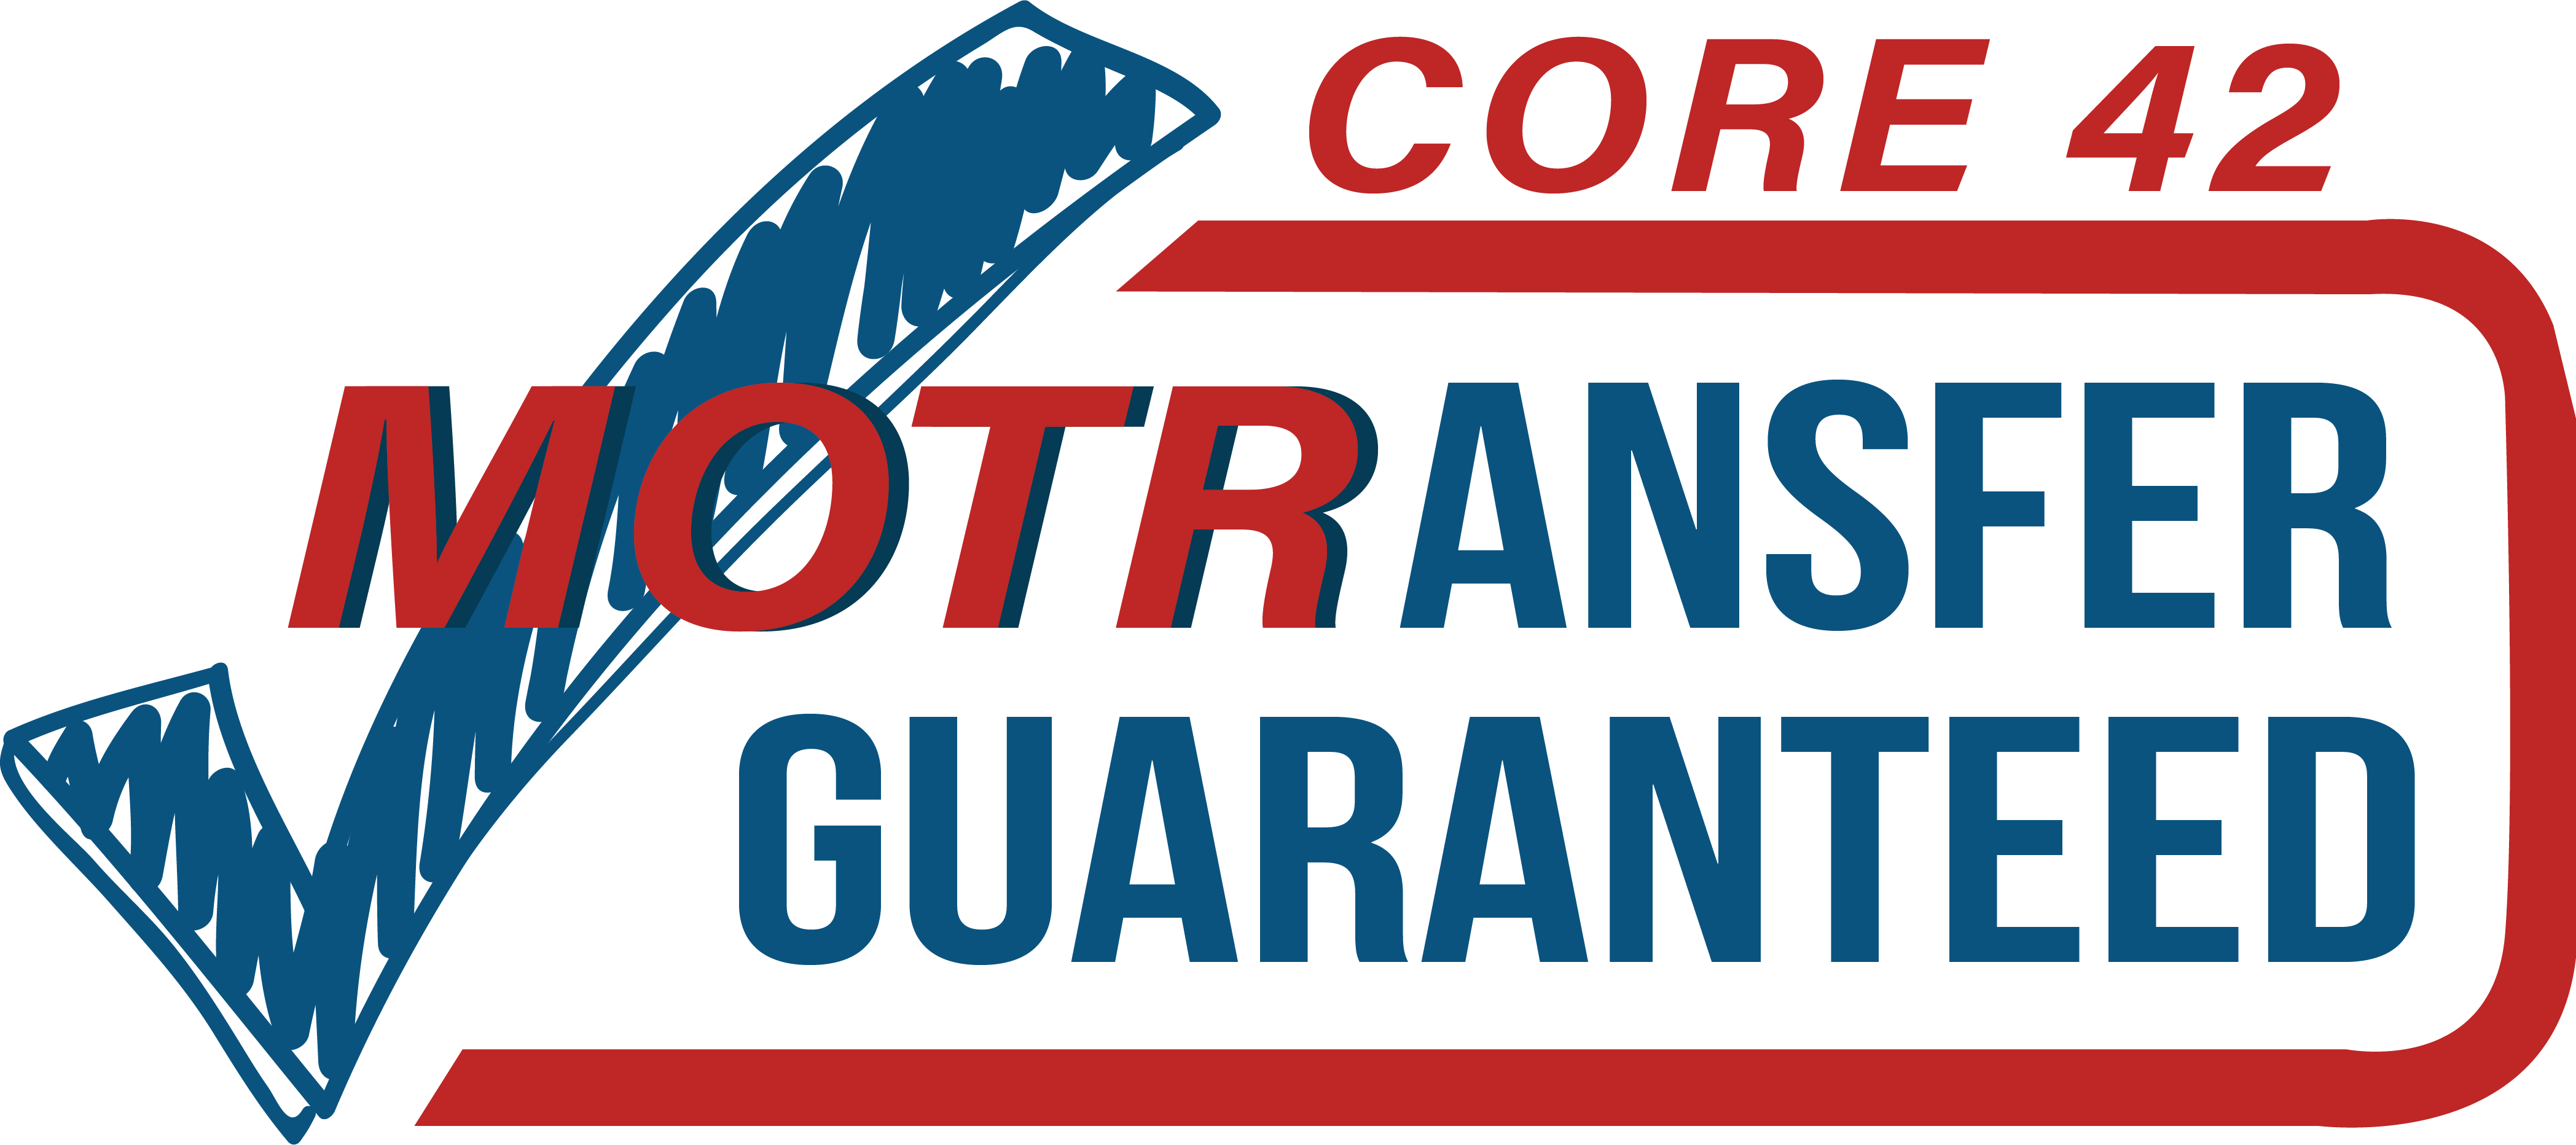 CORE 42 MOTRANSFER GUARANTEED